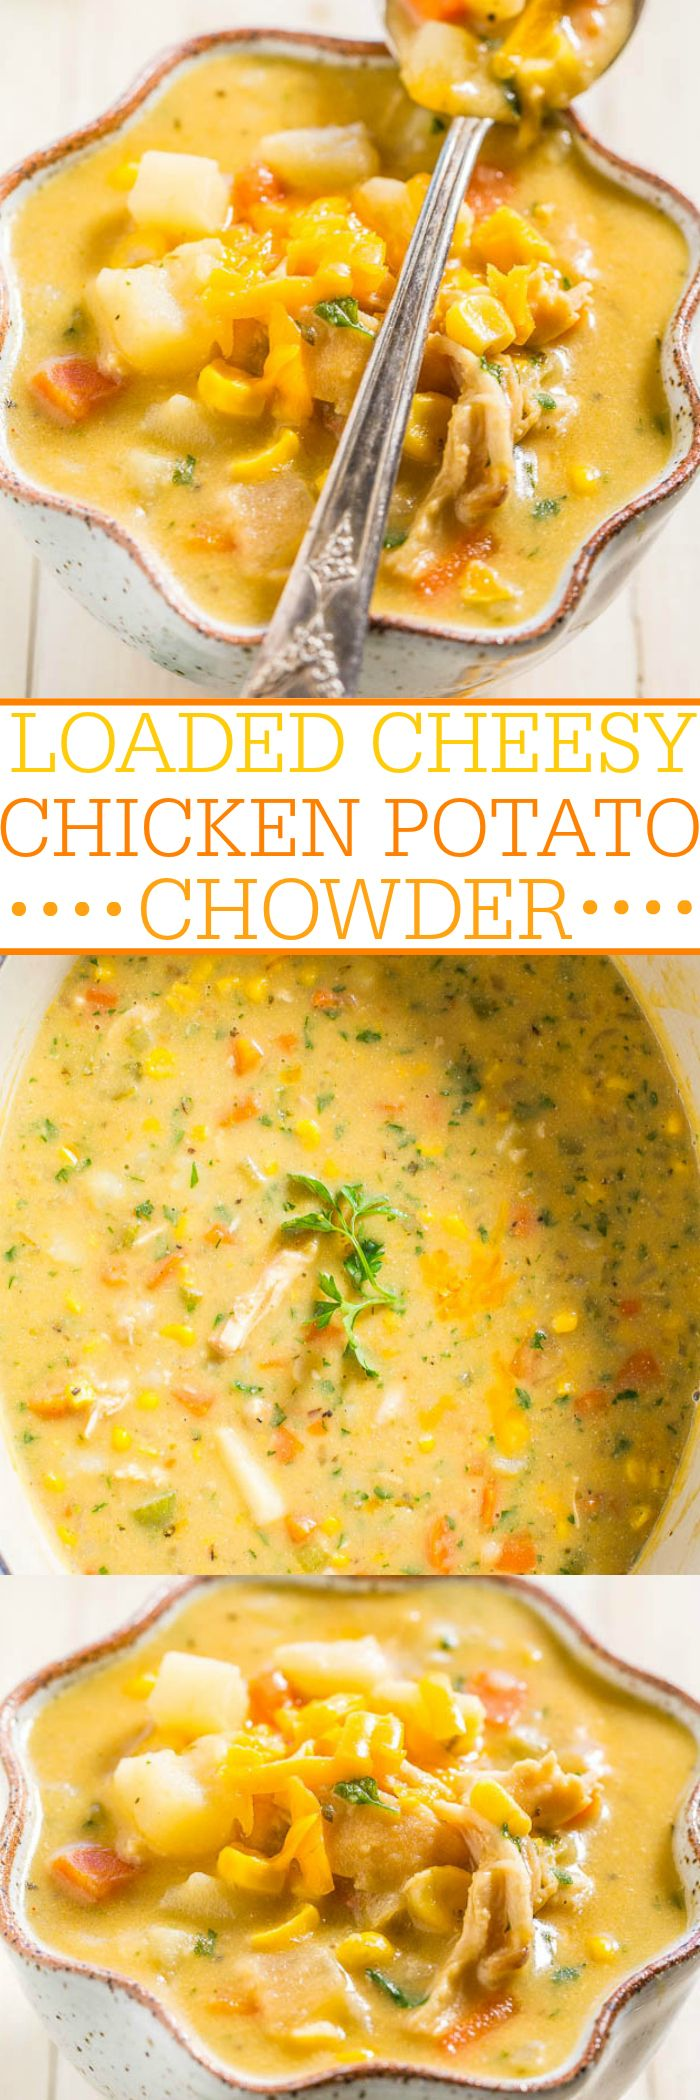 Loaded Cheesy Chicken Potato Chowder - Potatoes, chicken, carrots, corn and more!! Thick, creamy, rich, and wonderfully cheesy!! Fast and easy comfort food that everyone loves!!